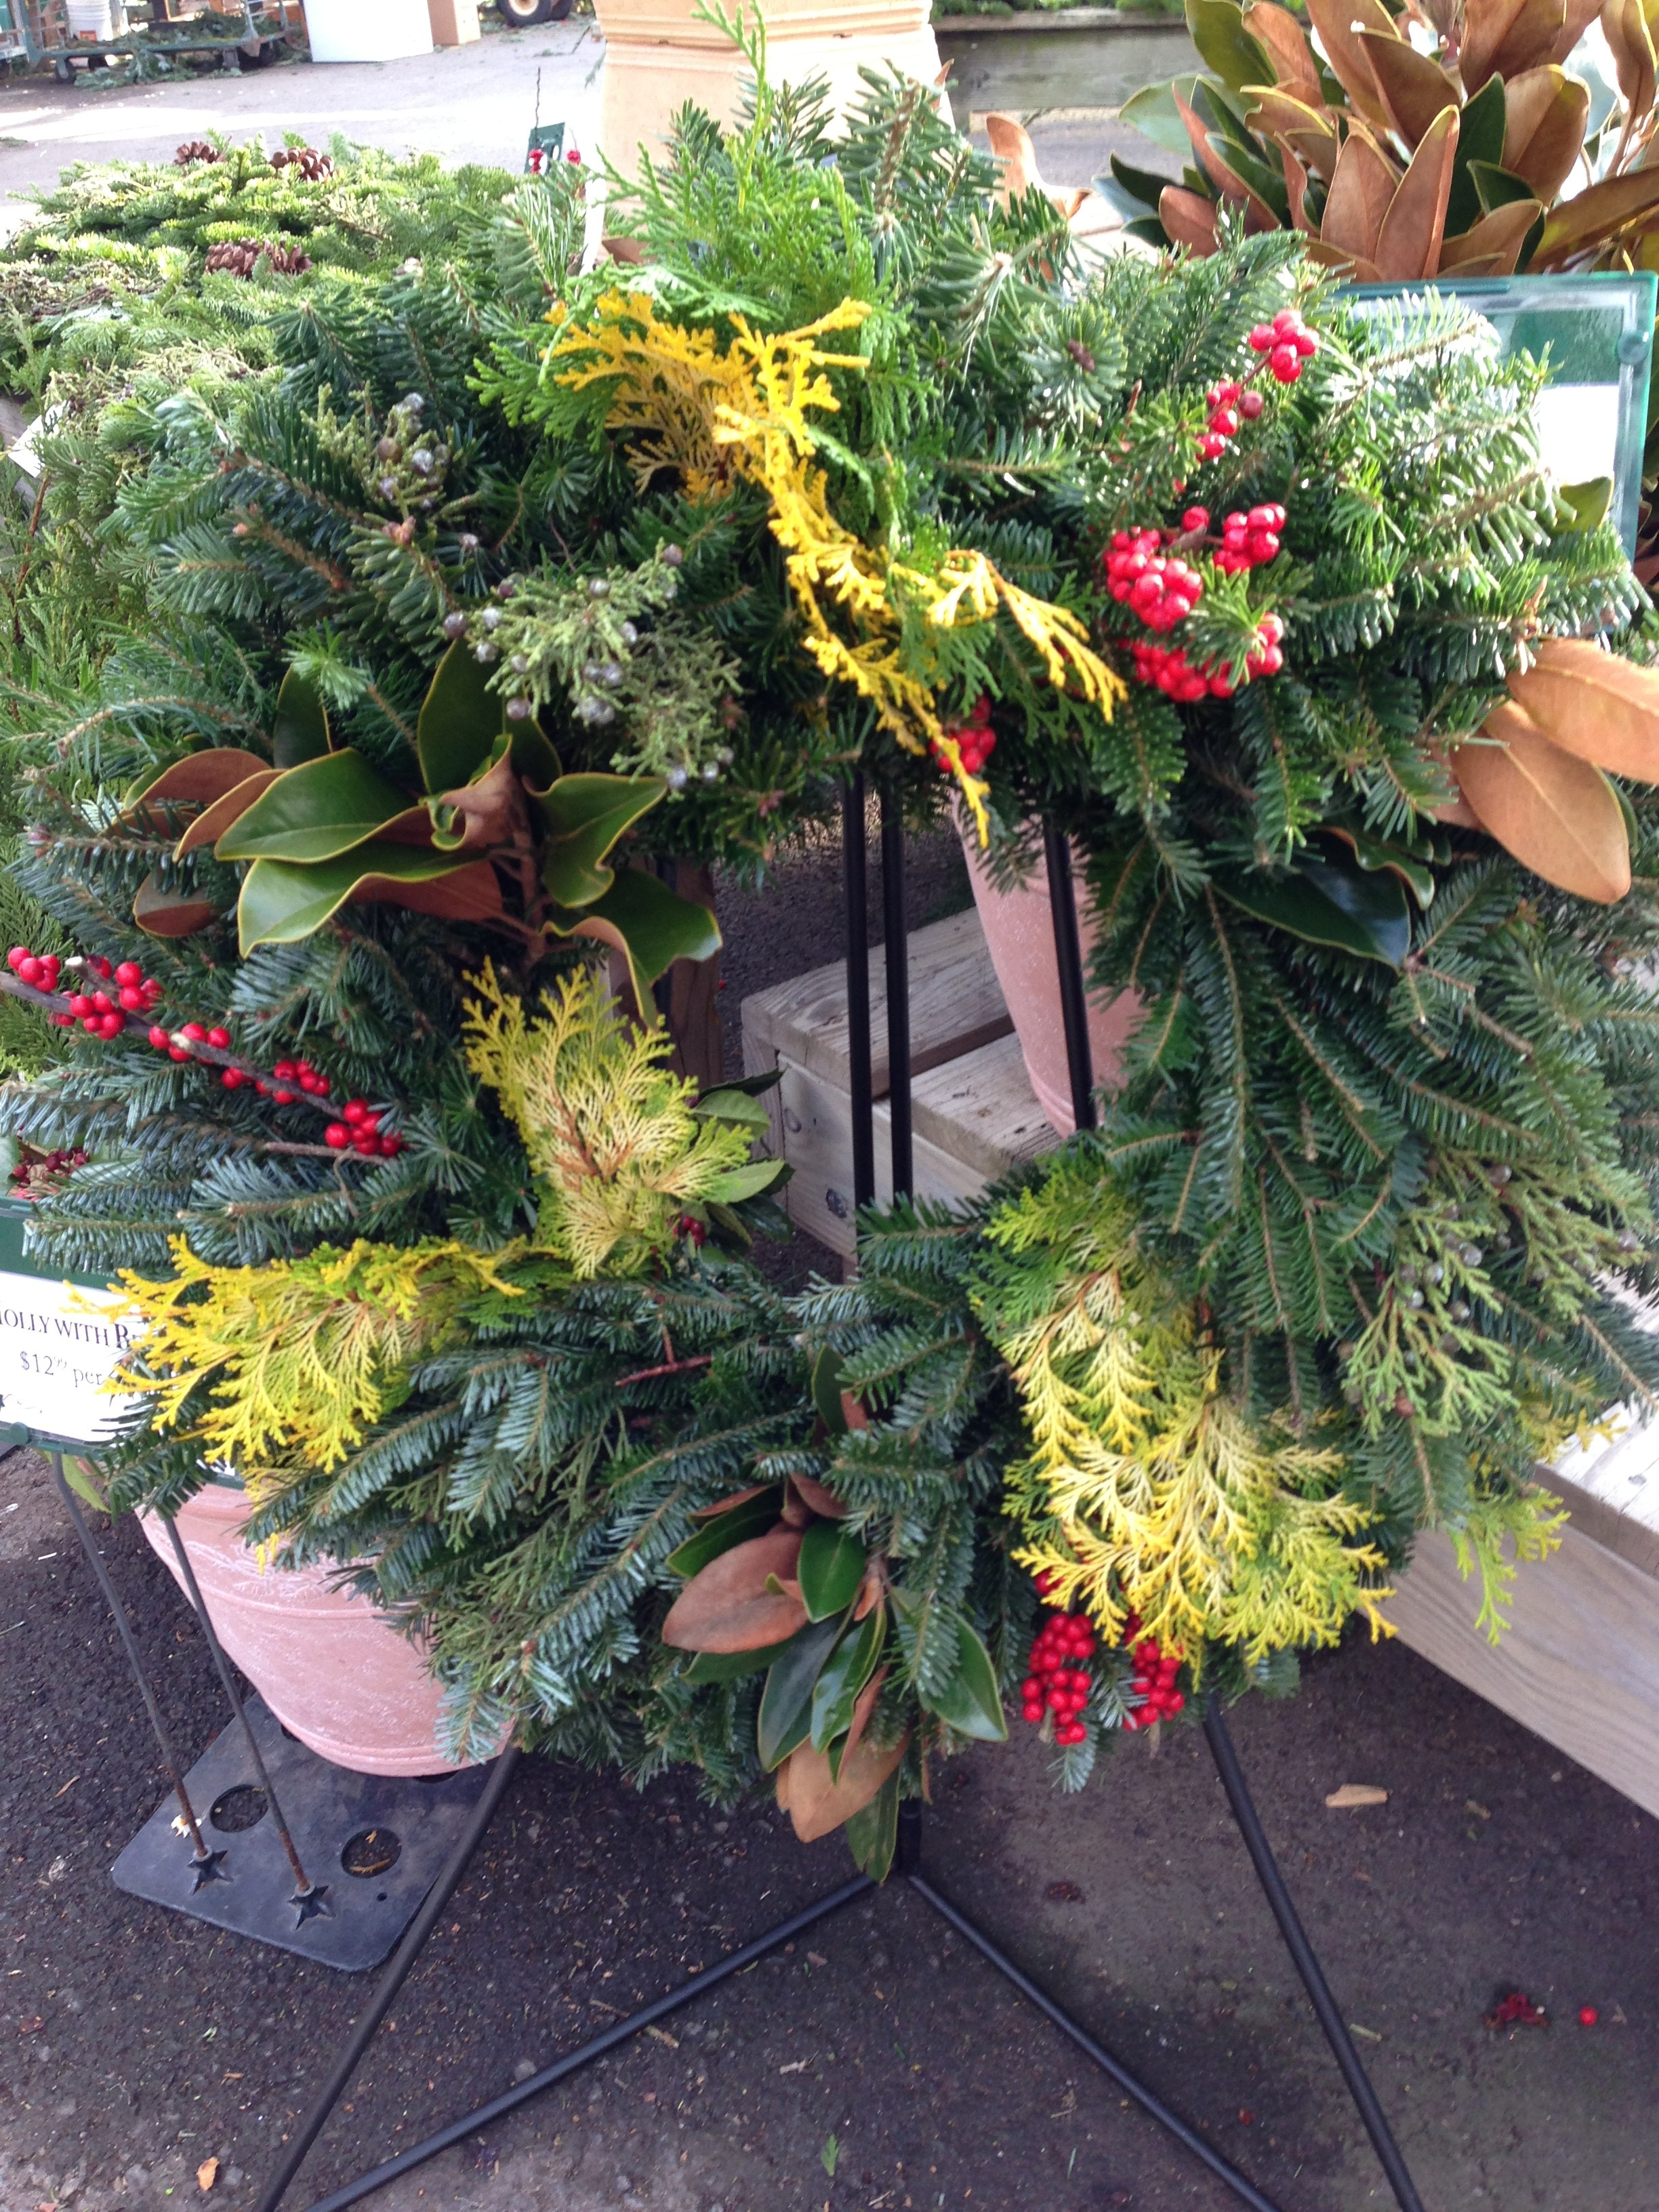 Merrifield Garden Center custom wreath (Photo Credit: Adroit Ideals)